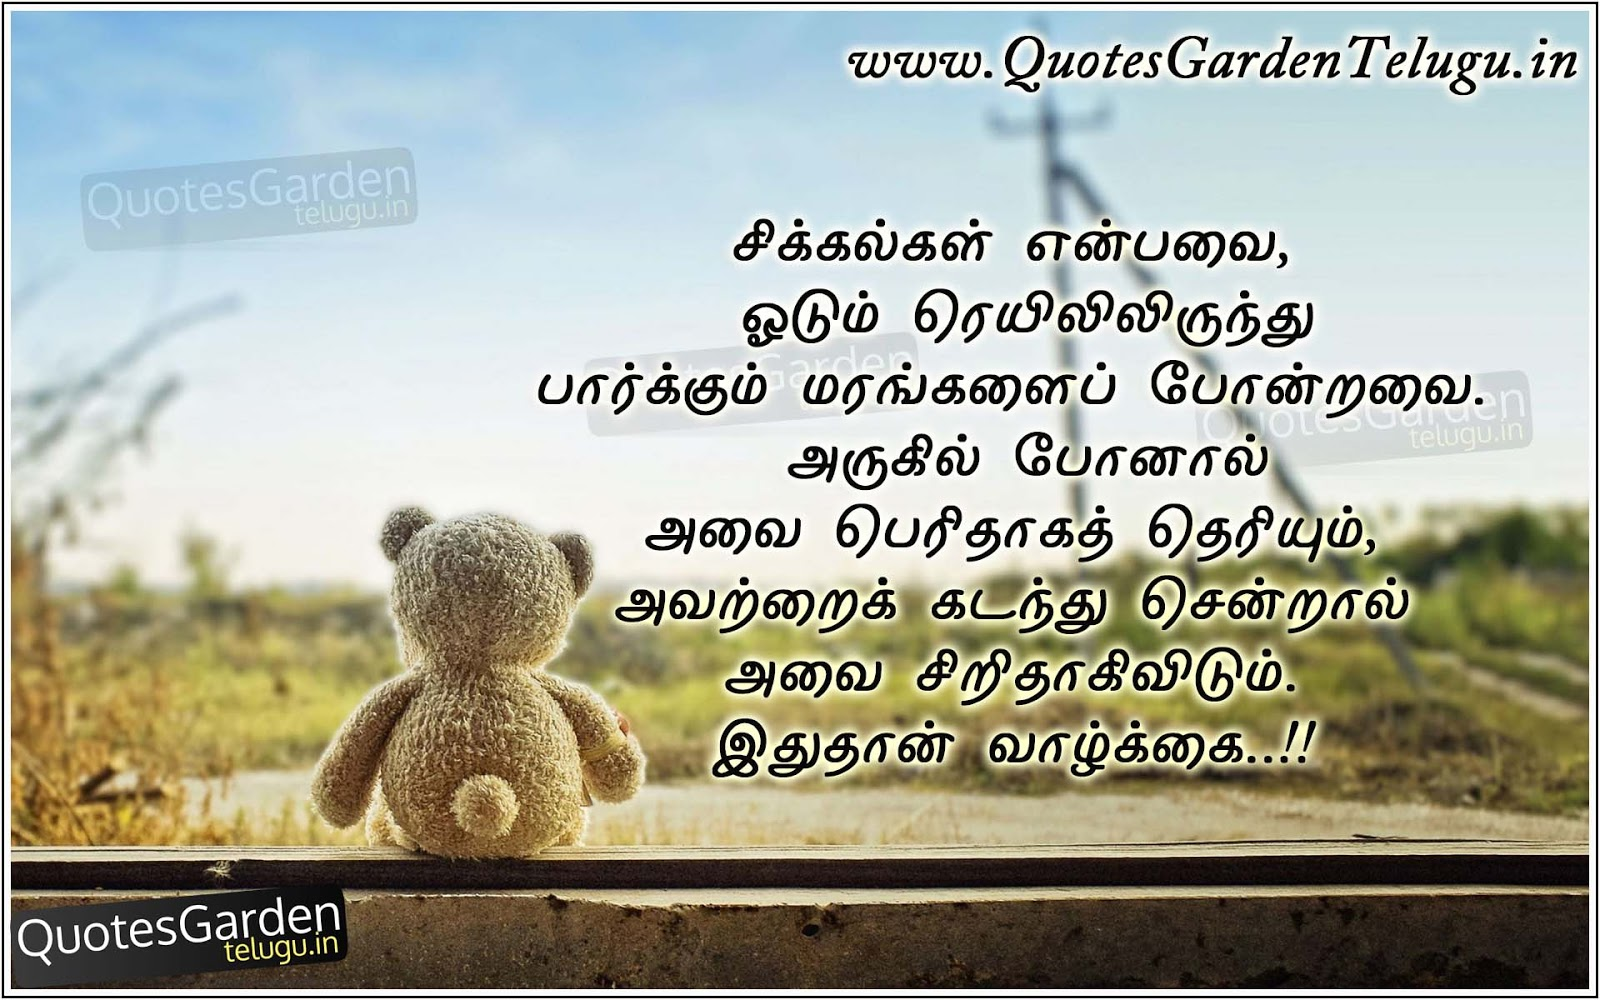 Good Heart Touching Quotes Life: Heart Touching Life Quotes In Tamil